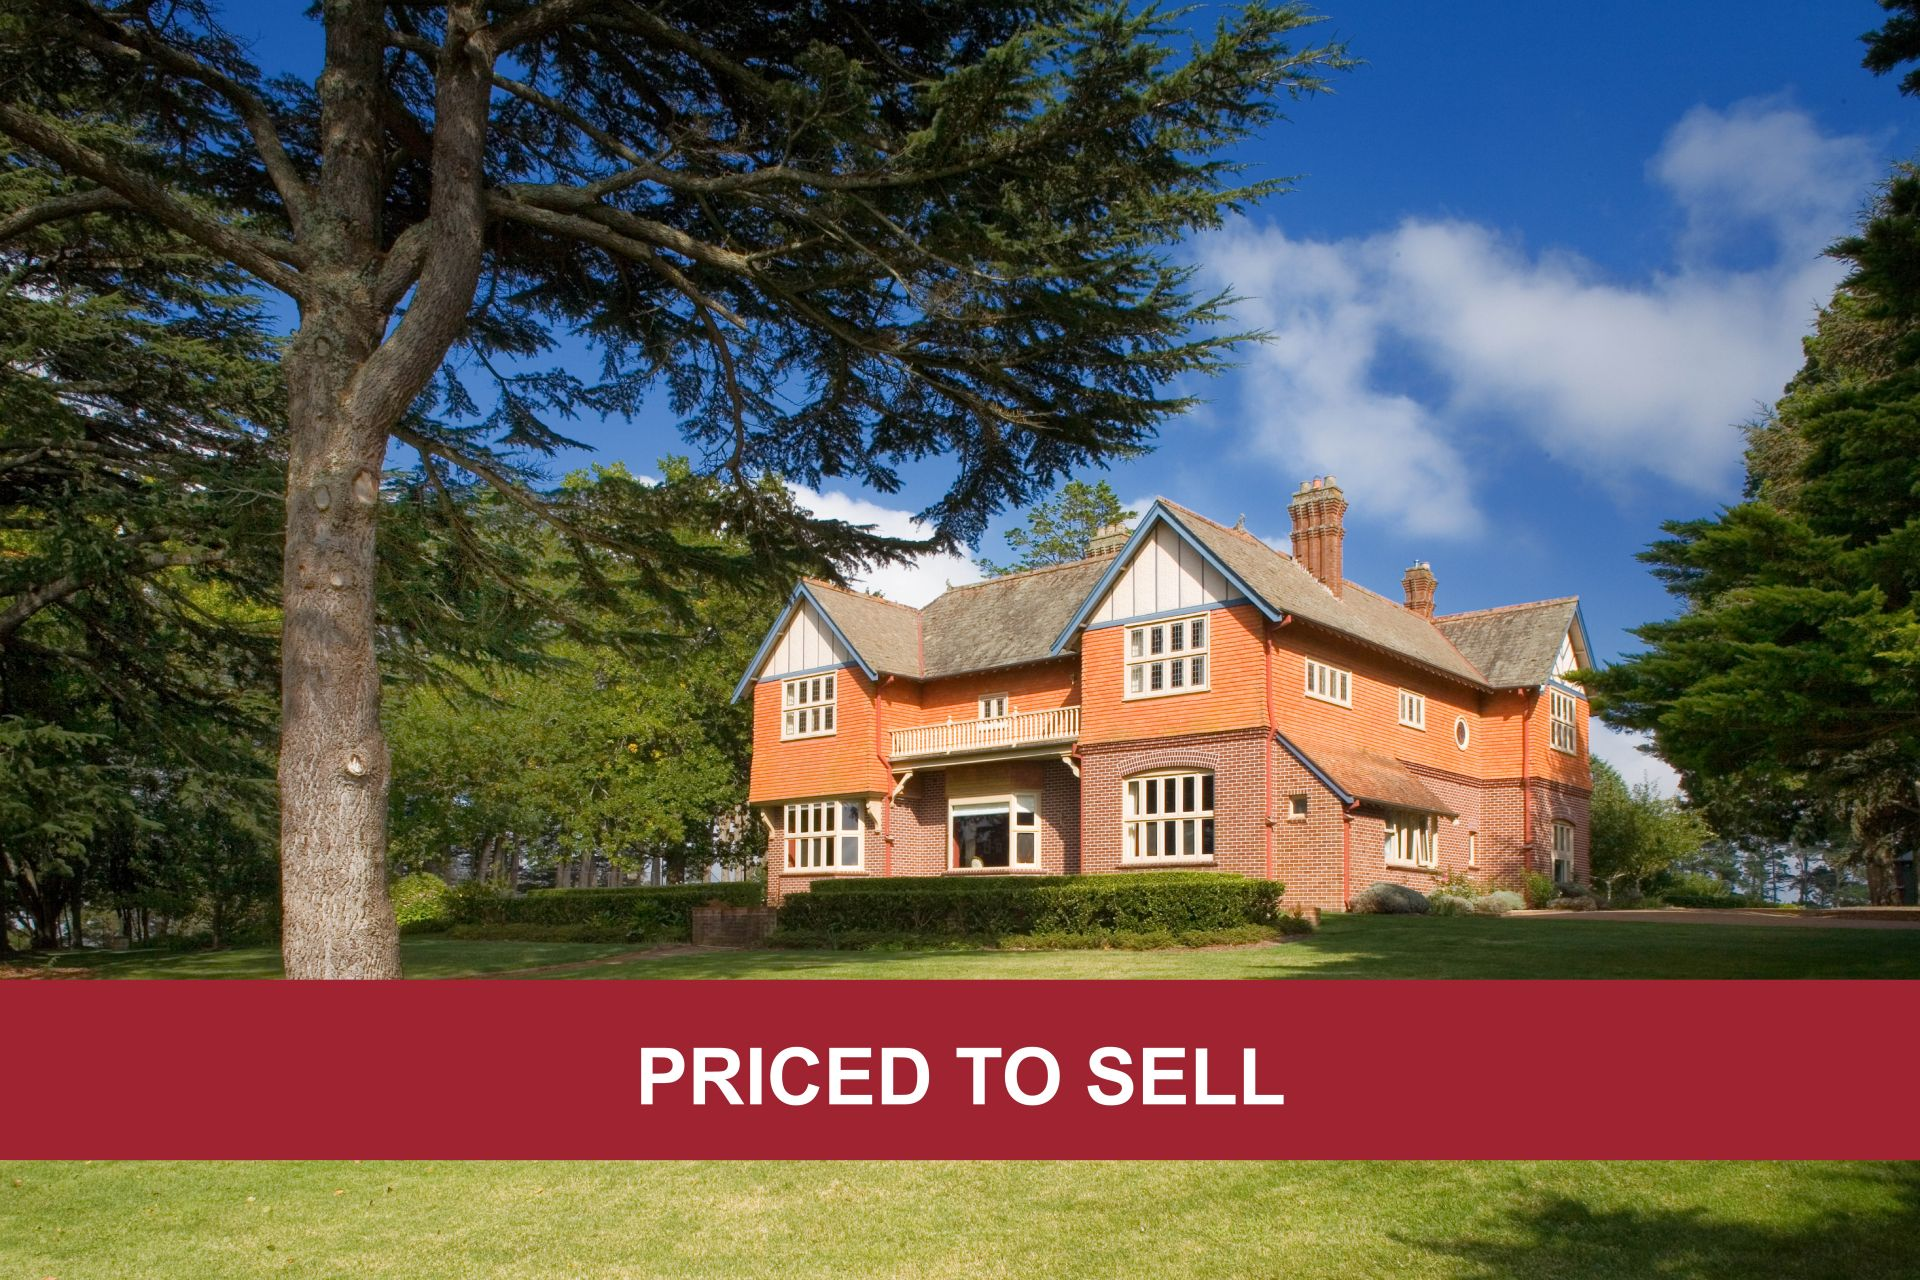 农场 / 牧场 / 种植园 为 销售 在 **PRICED TO SELL** Highfield - An historic English style country estate Sutton Forest, 新南威尔士,2577 澳大利亚